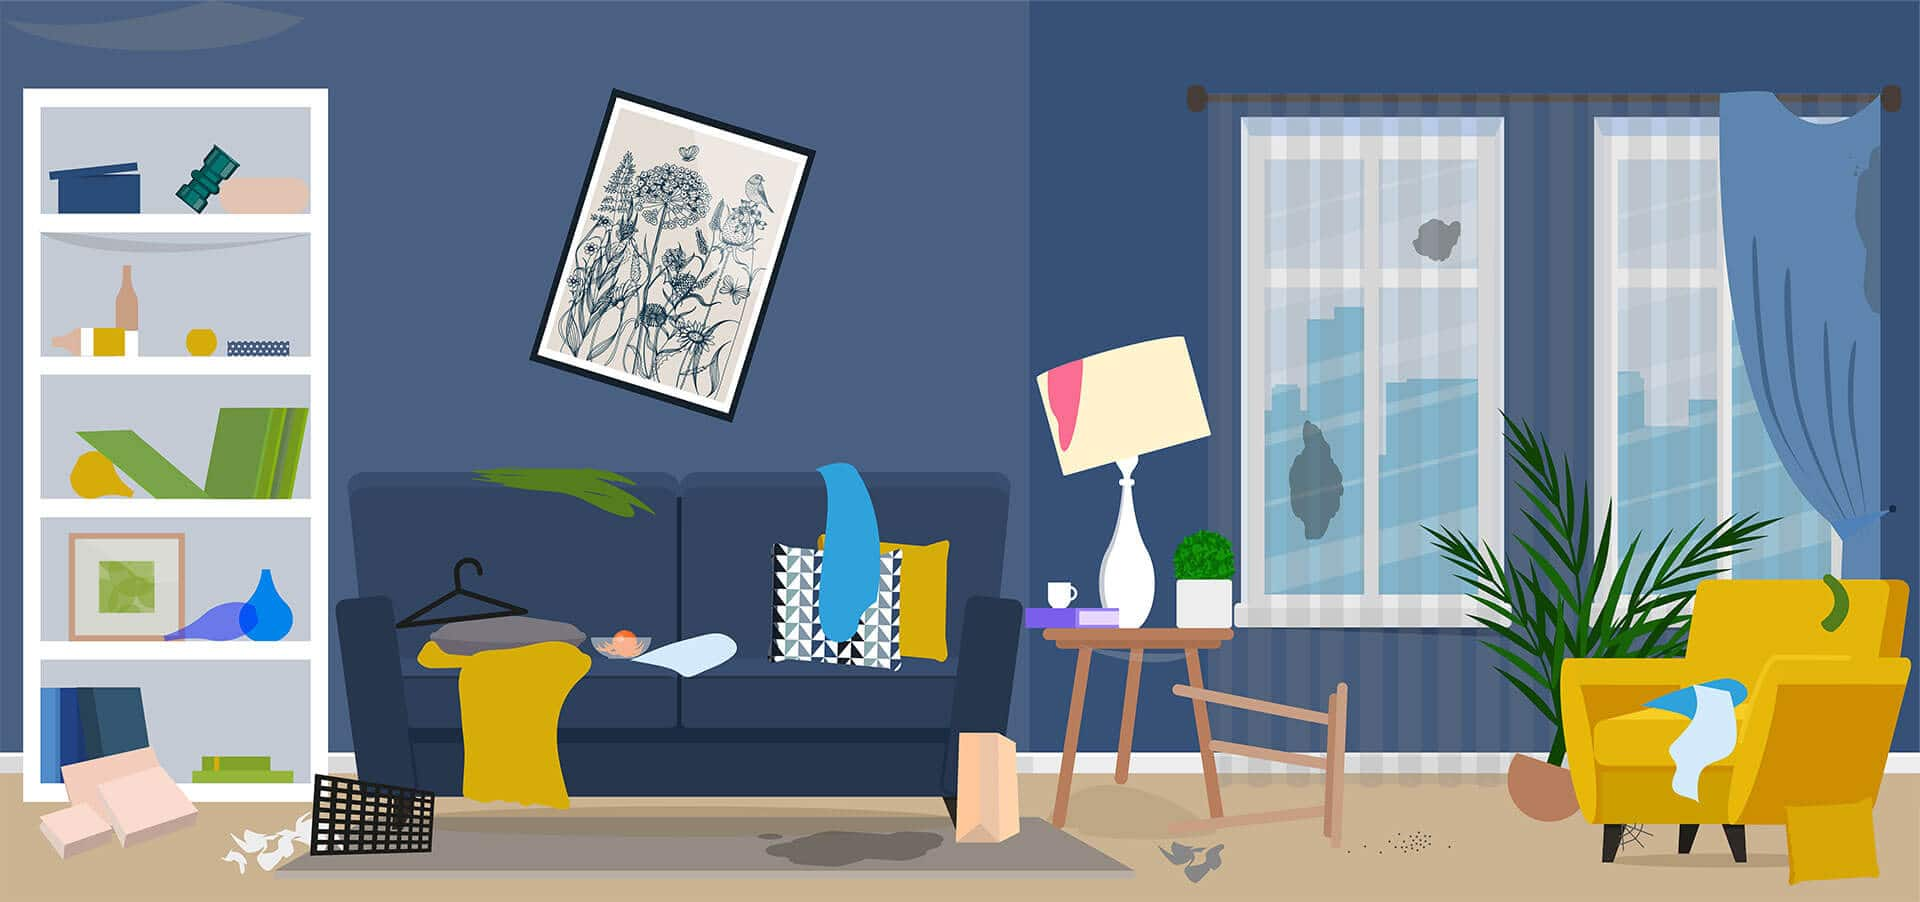 What Is Clutter? The Meaning Will Surprise You